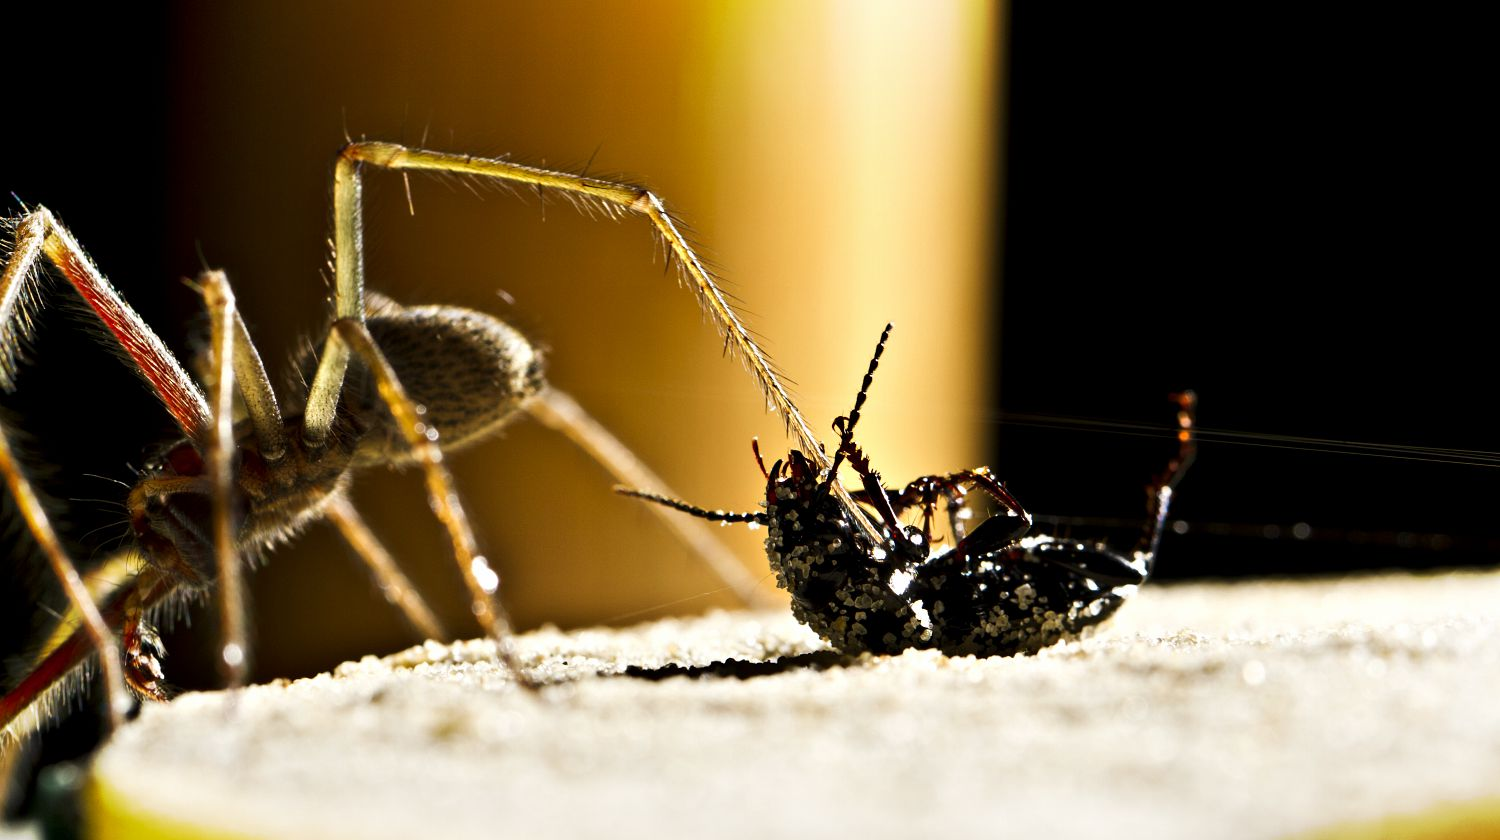 Feature | Spider-long-legs-walks-over-black | The Most Common (And Deadly) Spiders In The U.S.